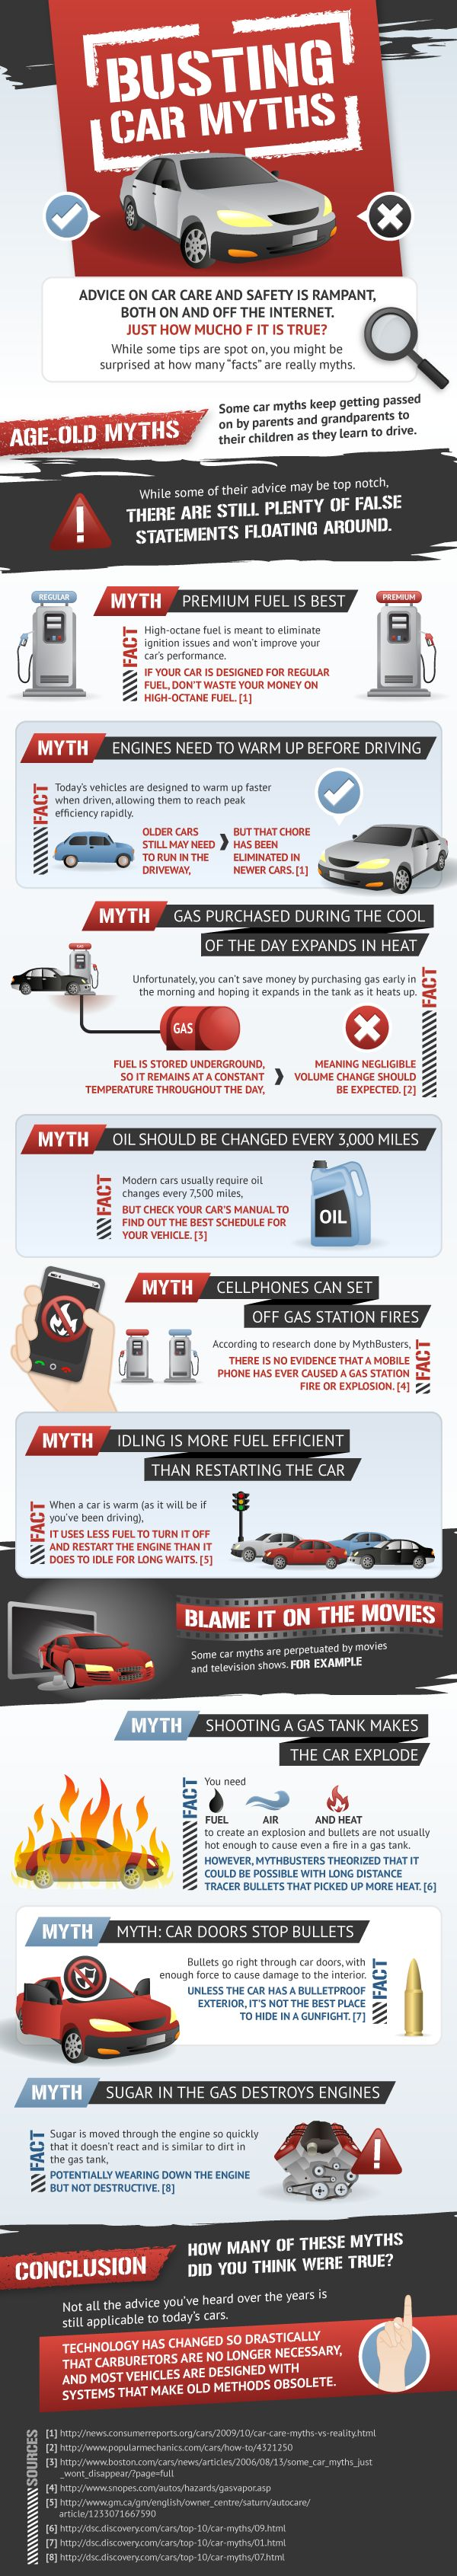 """Advice on car care and safety is rampant, both on and off the internet. Just how much of it it true? While some tips are spot on, you might be surprised at how many """"facts"""" are really myths."""